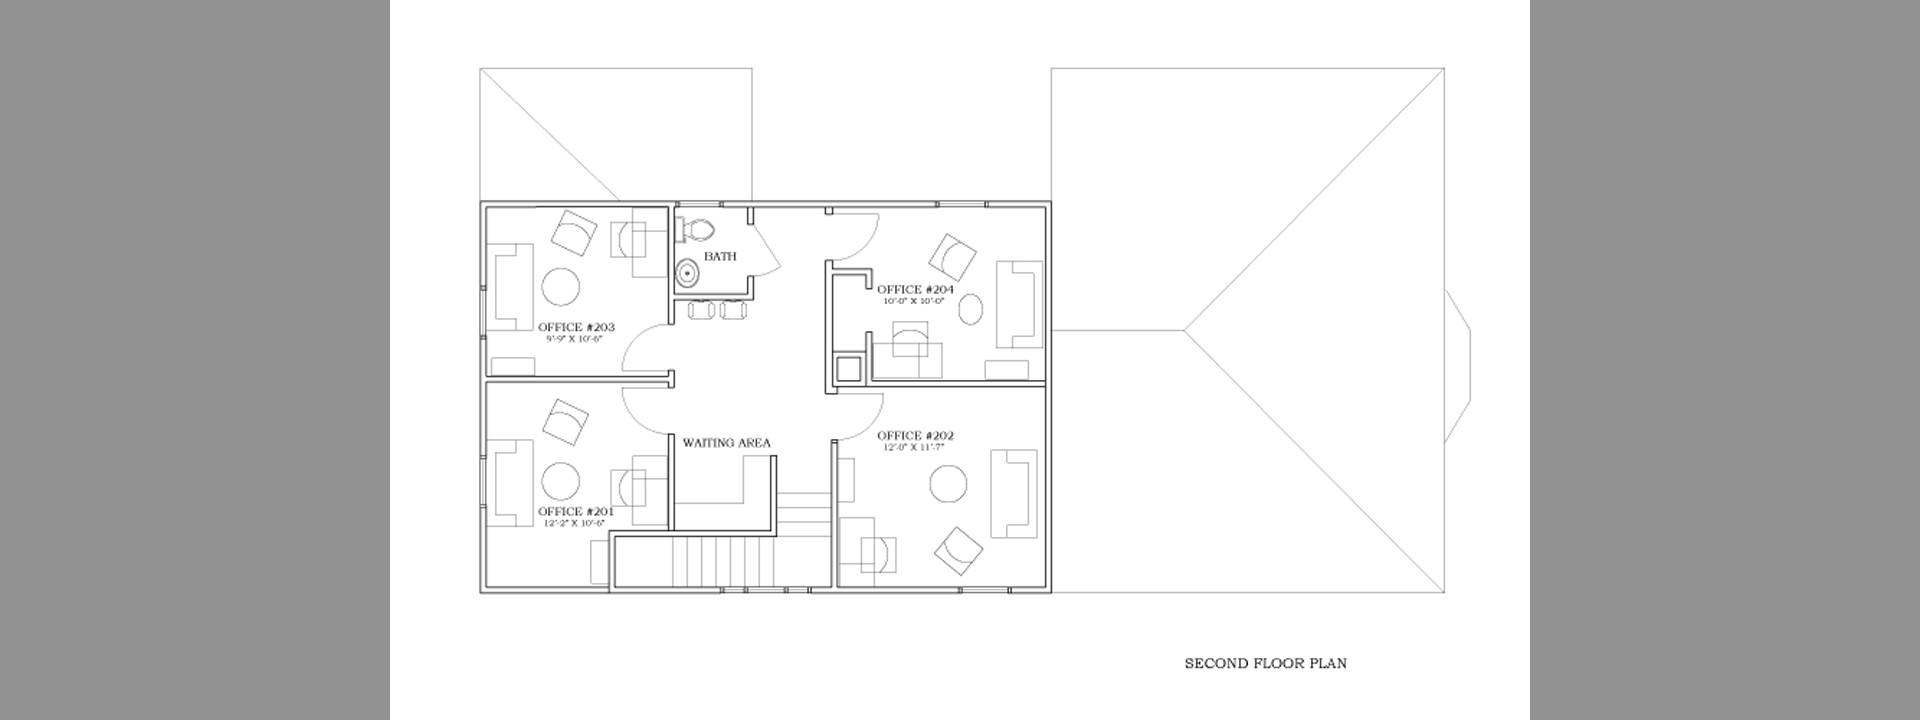 2nd Floor Plan Smithtown Solutions Thinking In A New Space Schematic